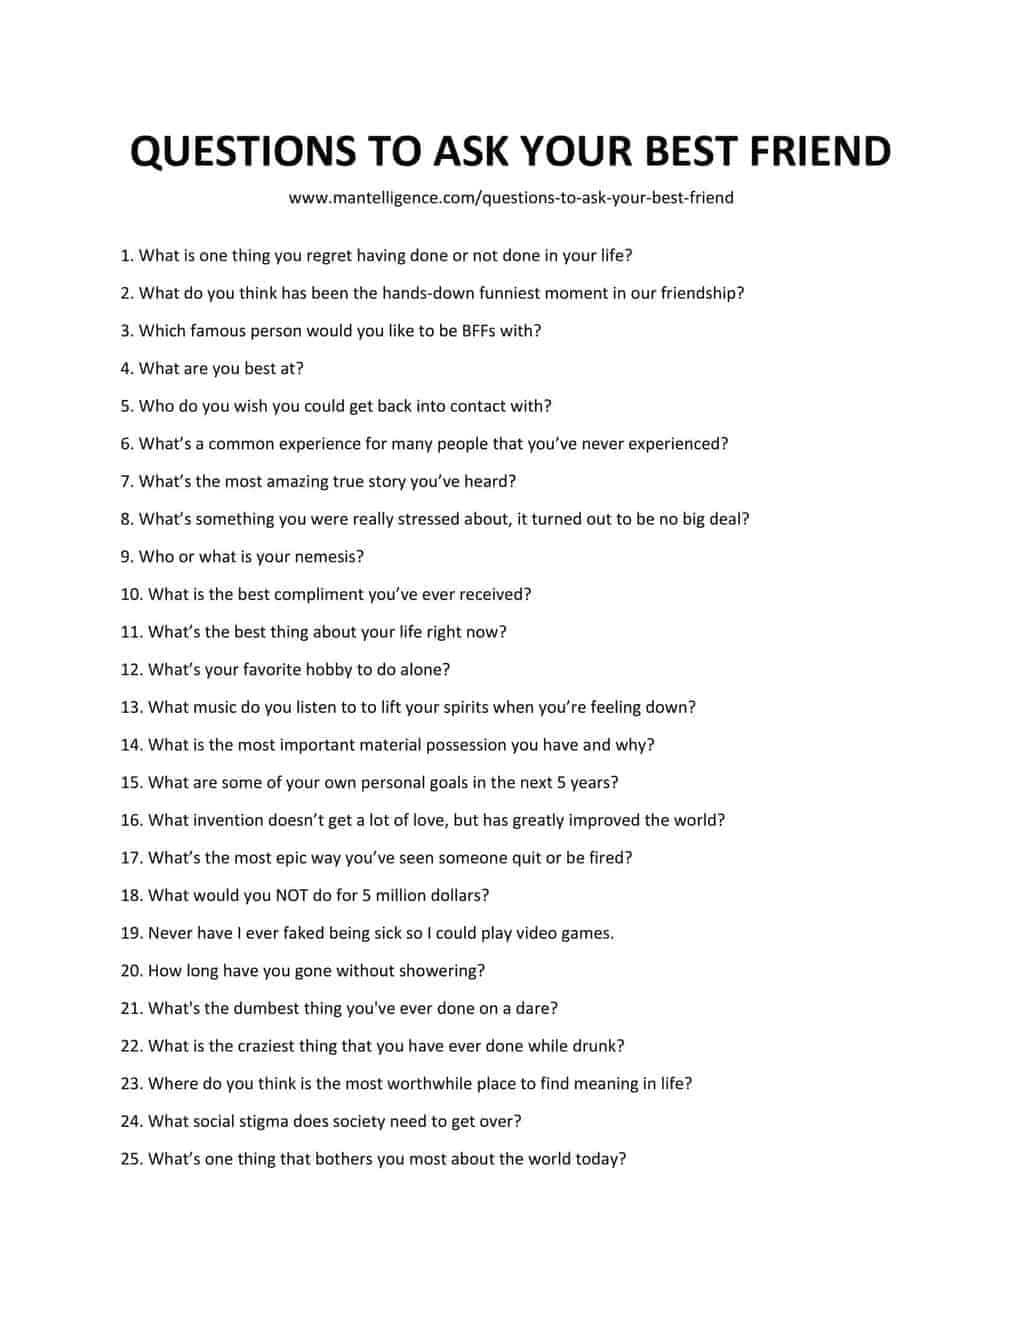 List of Questions To Ask Your Best Friend